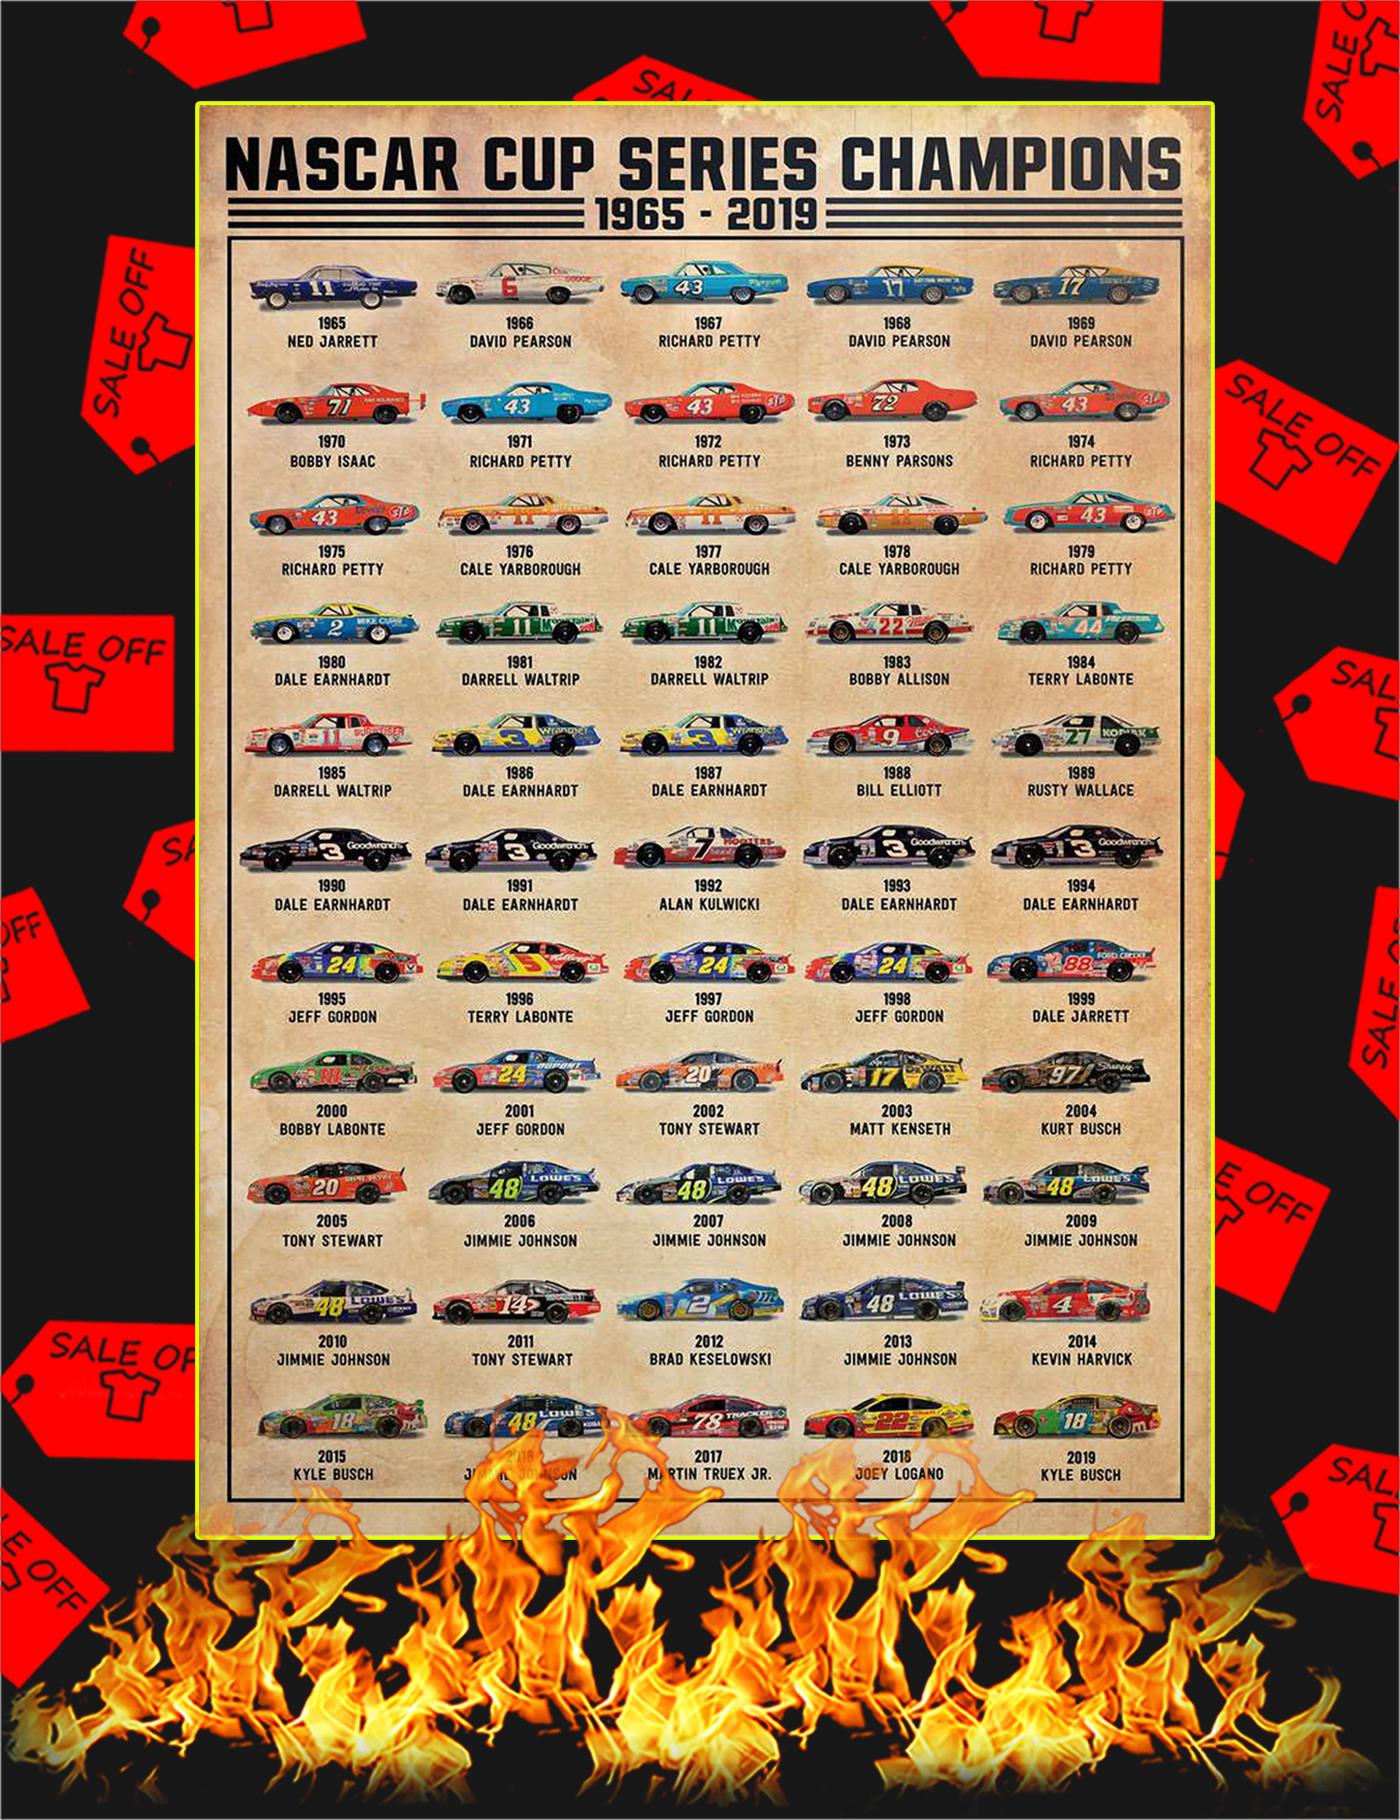 Nascar cup series champions poster - A1